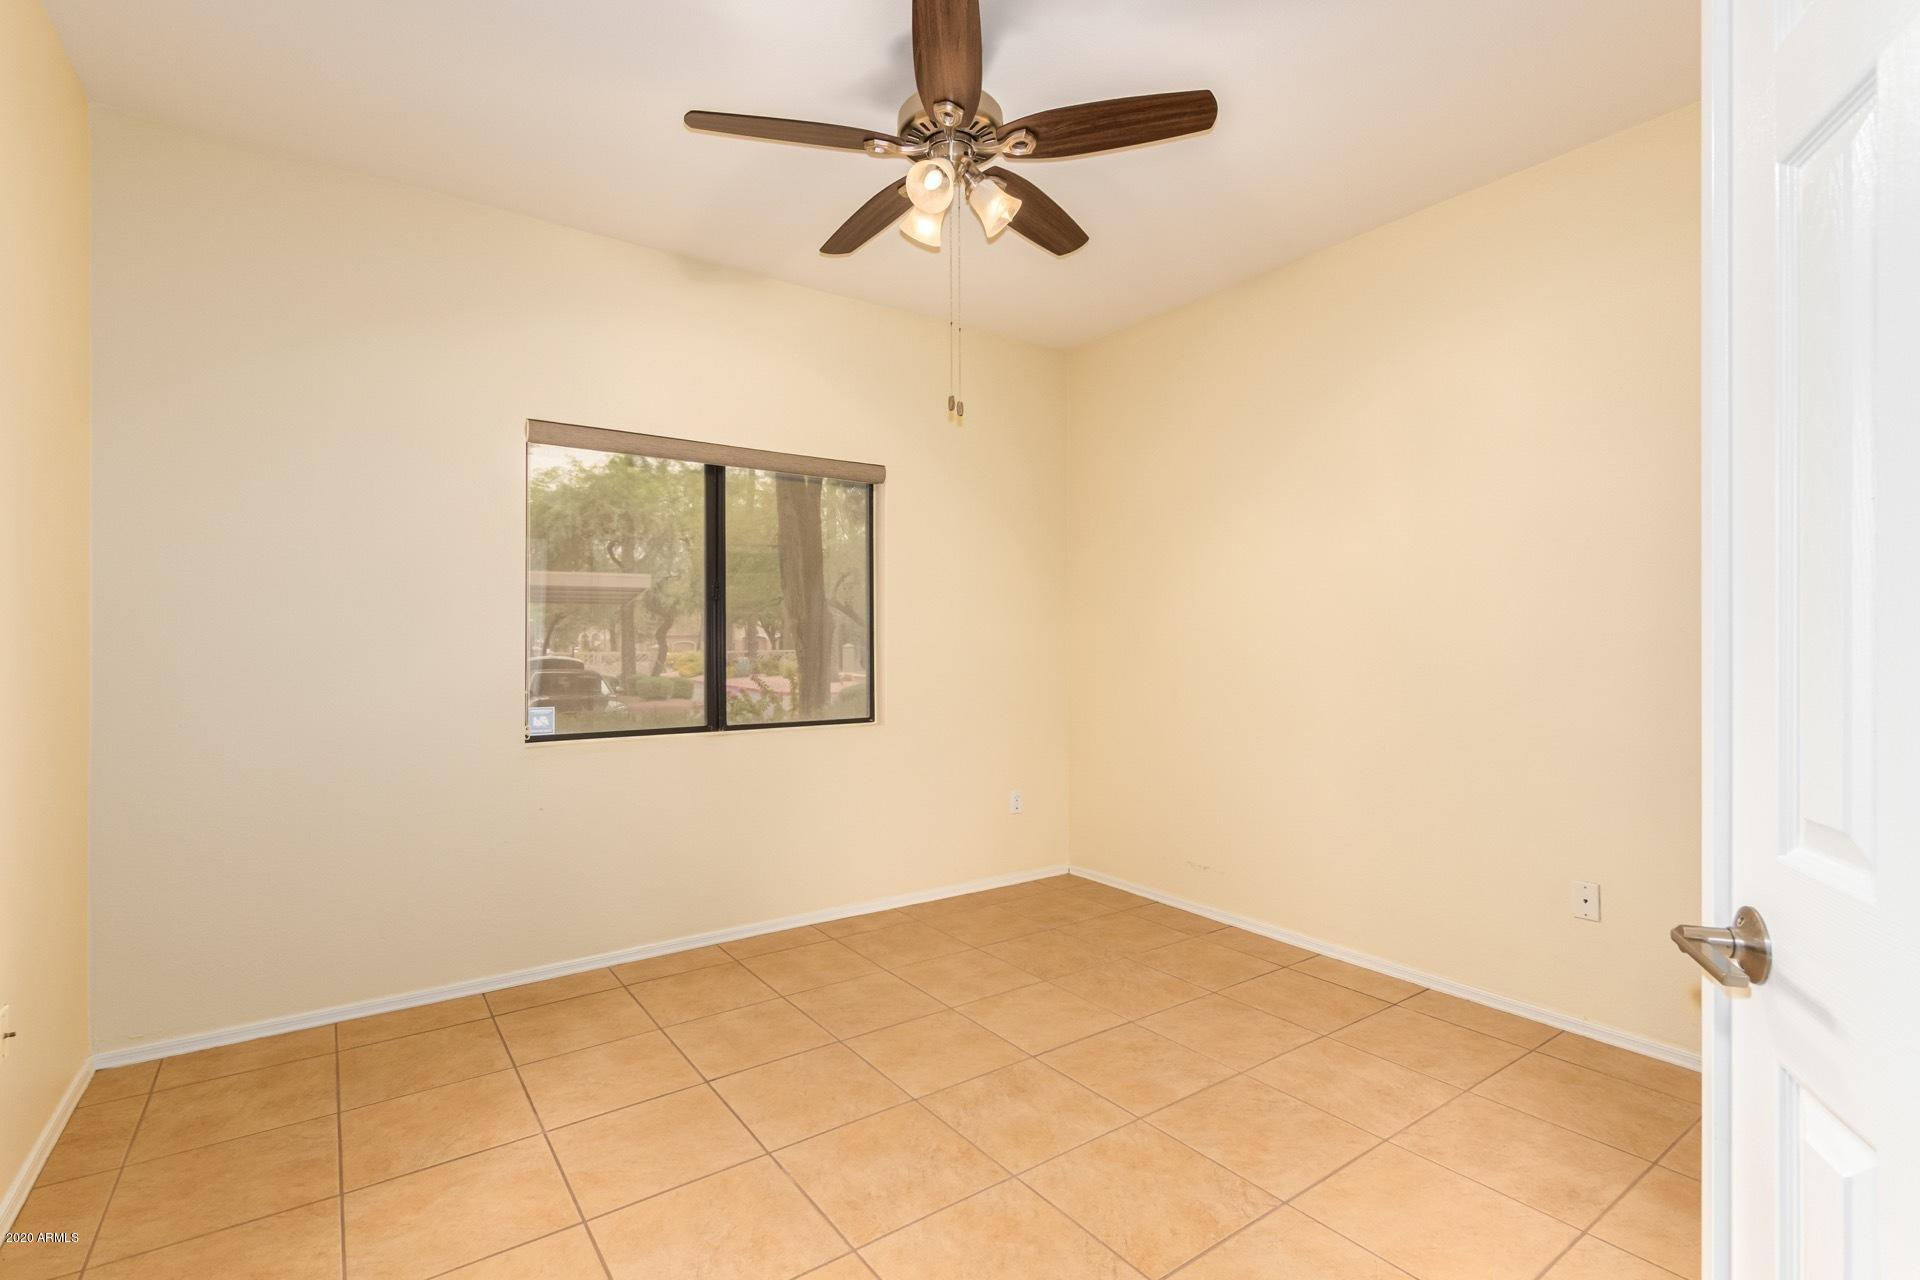 Photo #4: Guest bedroom or office